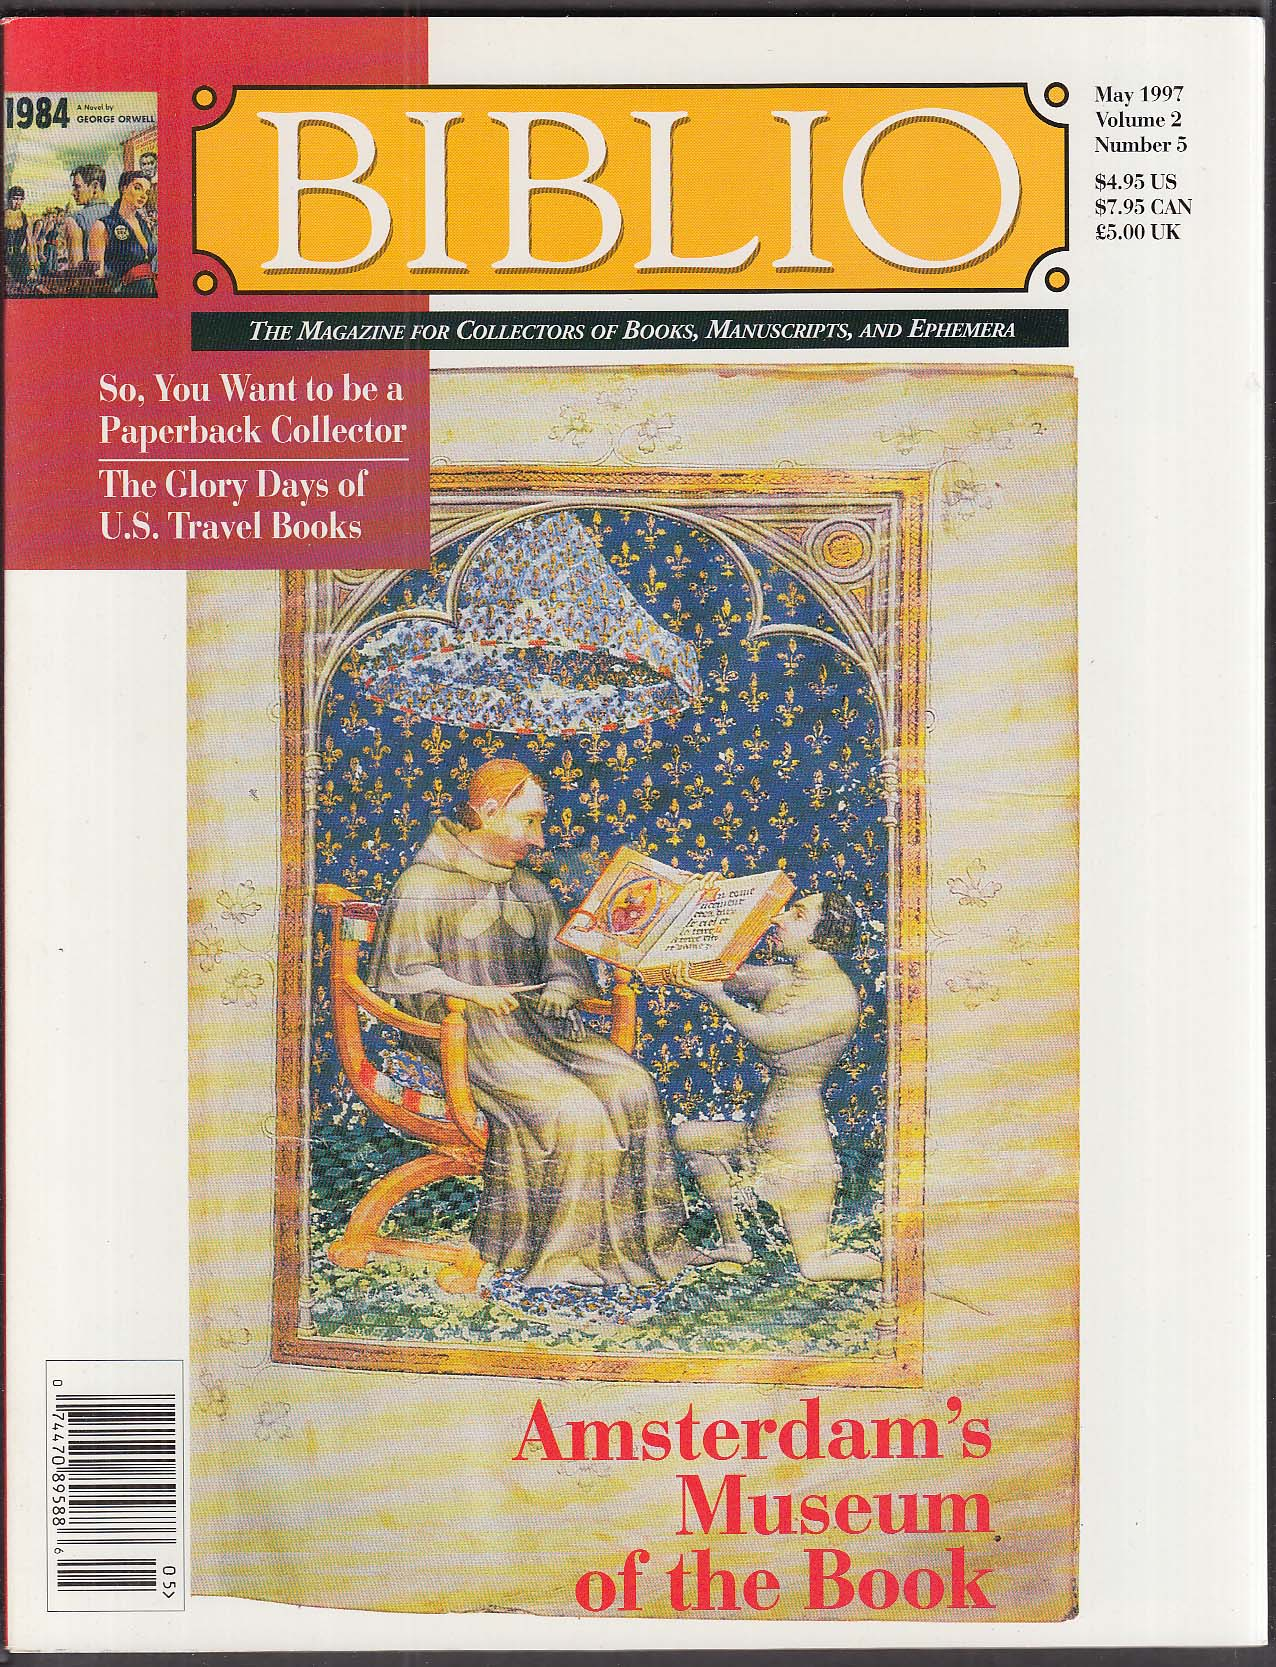 BIBLIO Amsterdam Book Museum; Collecting Paperbacks ++ 5 1997